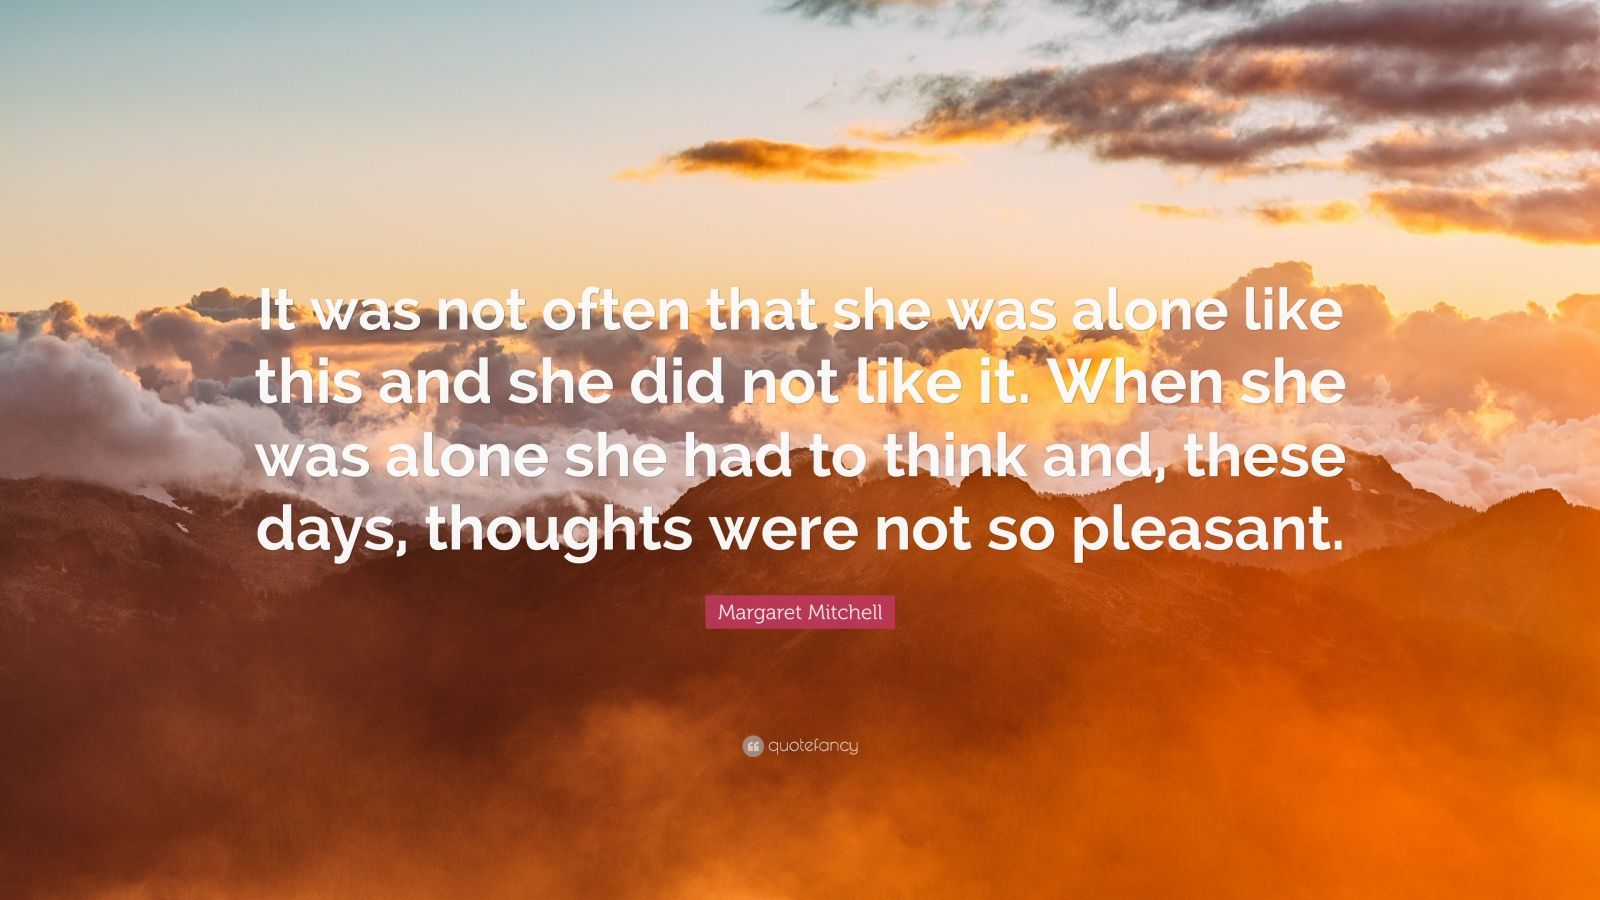 """Margaret Mitchell Quote: """"It was not often that she was alone like this and she did not like it. When she was alone she had to think and, these days, thoughts were not so pleasant."""""""